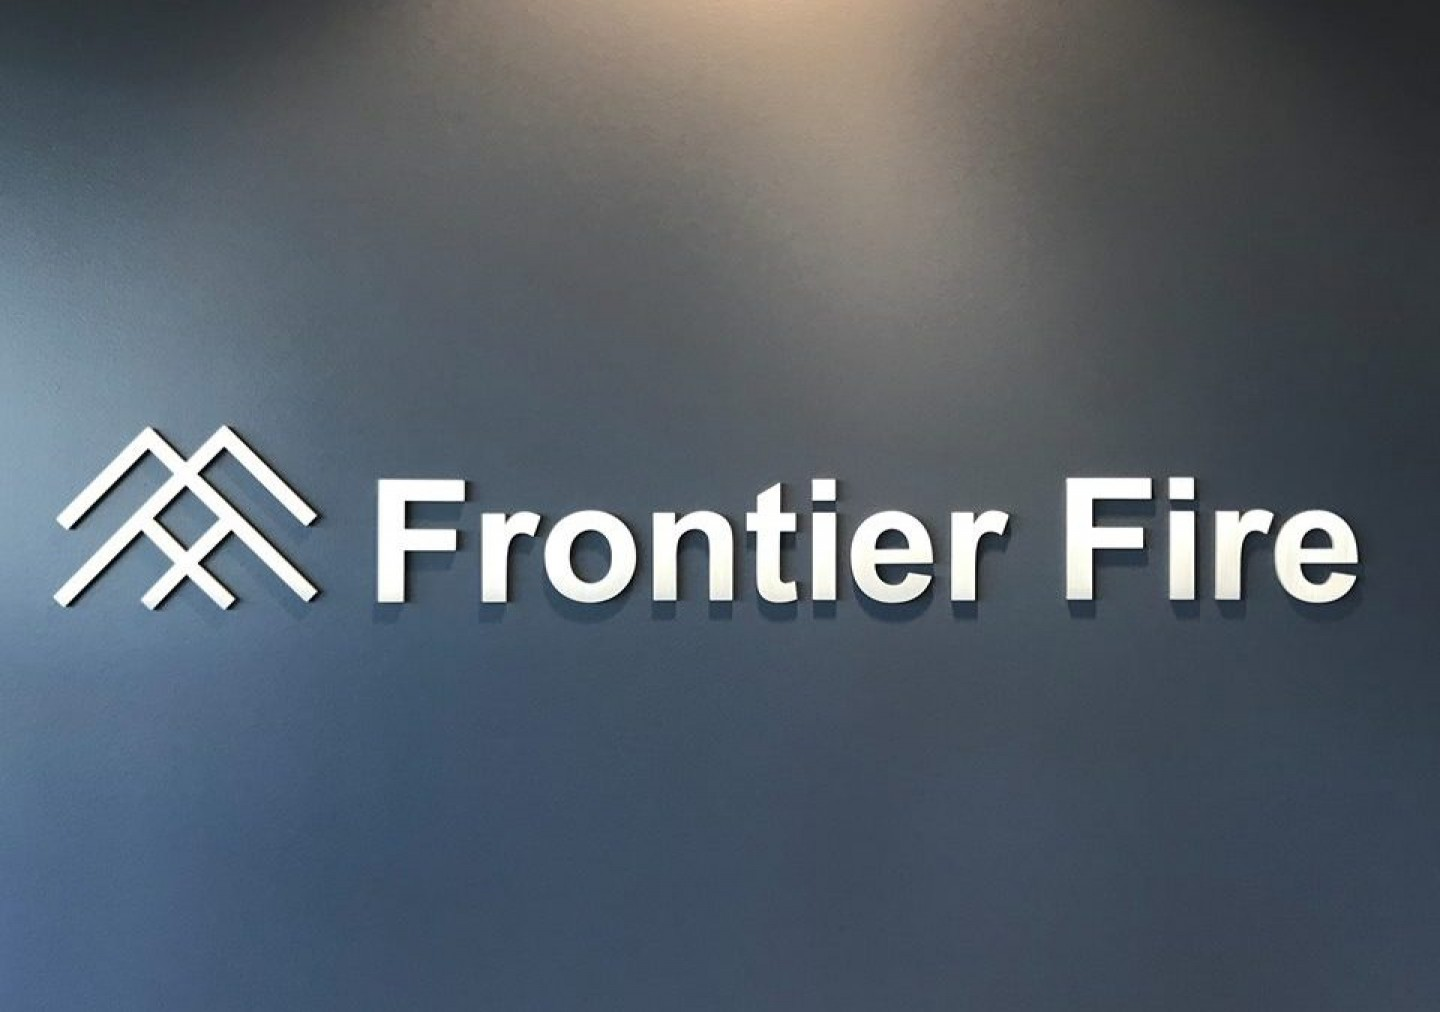 frontier-fire-acquires-cottle-fire-protection